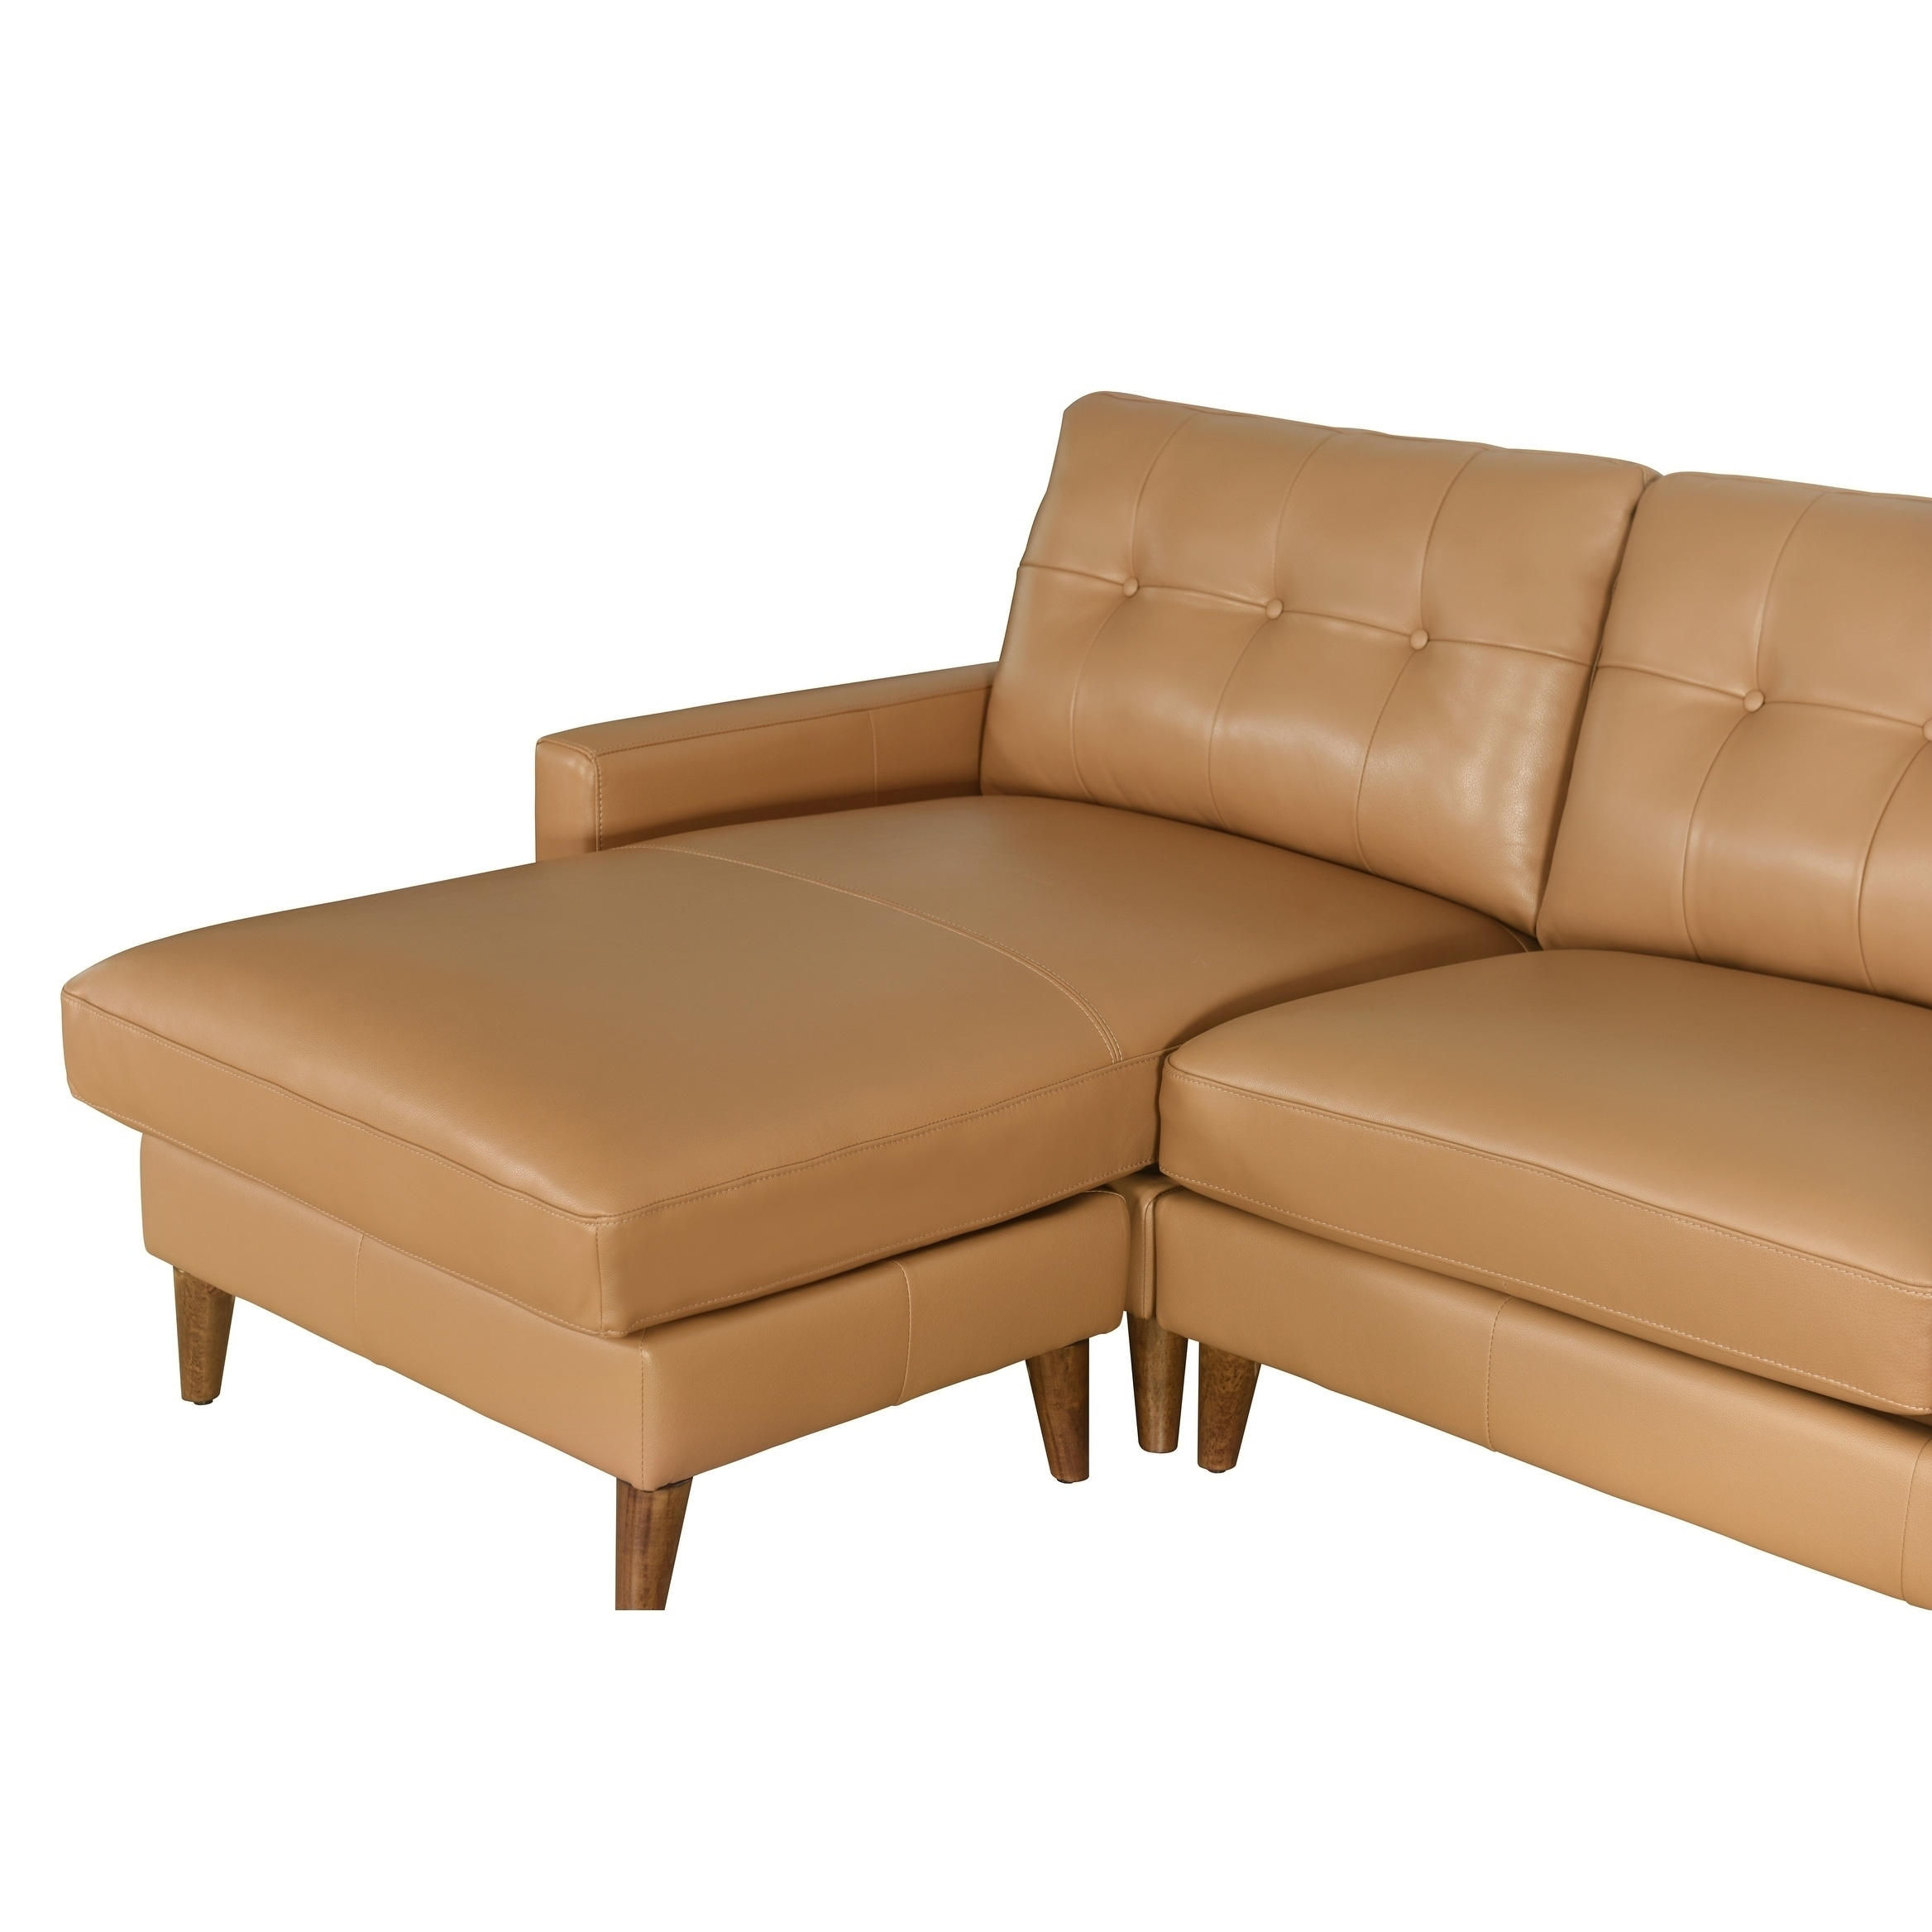 by at piece royal chaise with signature sectional design pin ashley furniture leather right lugoro